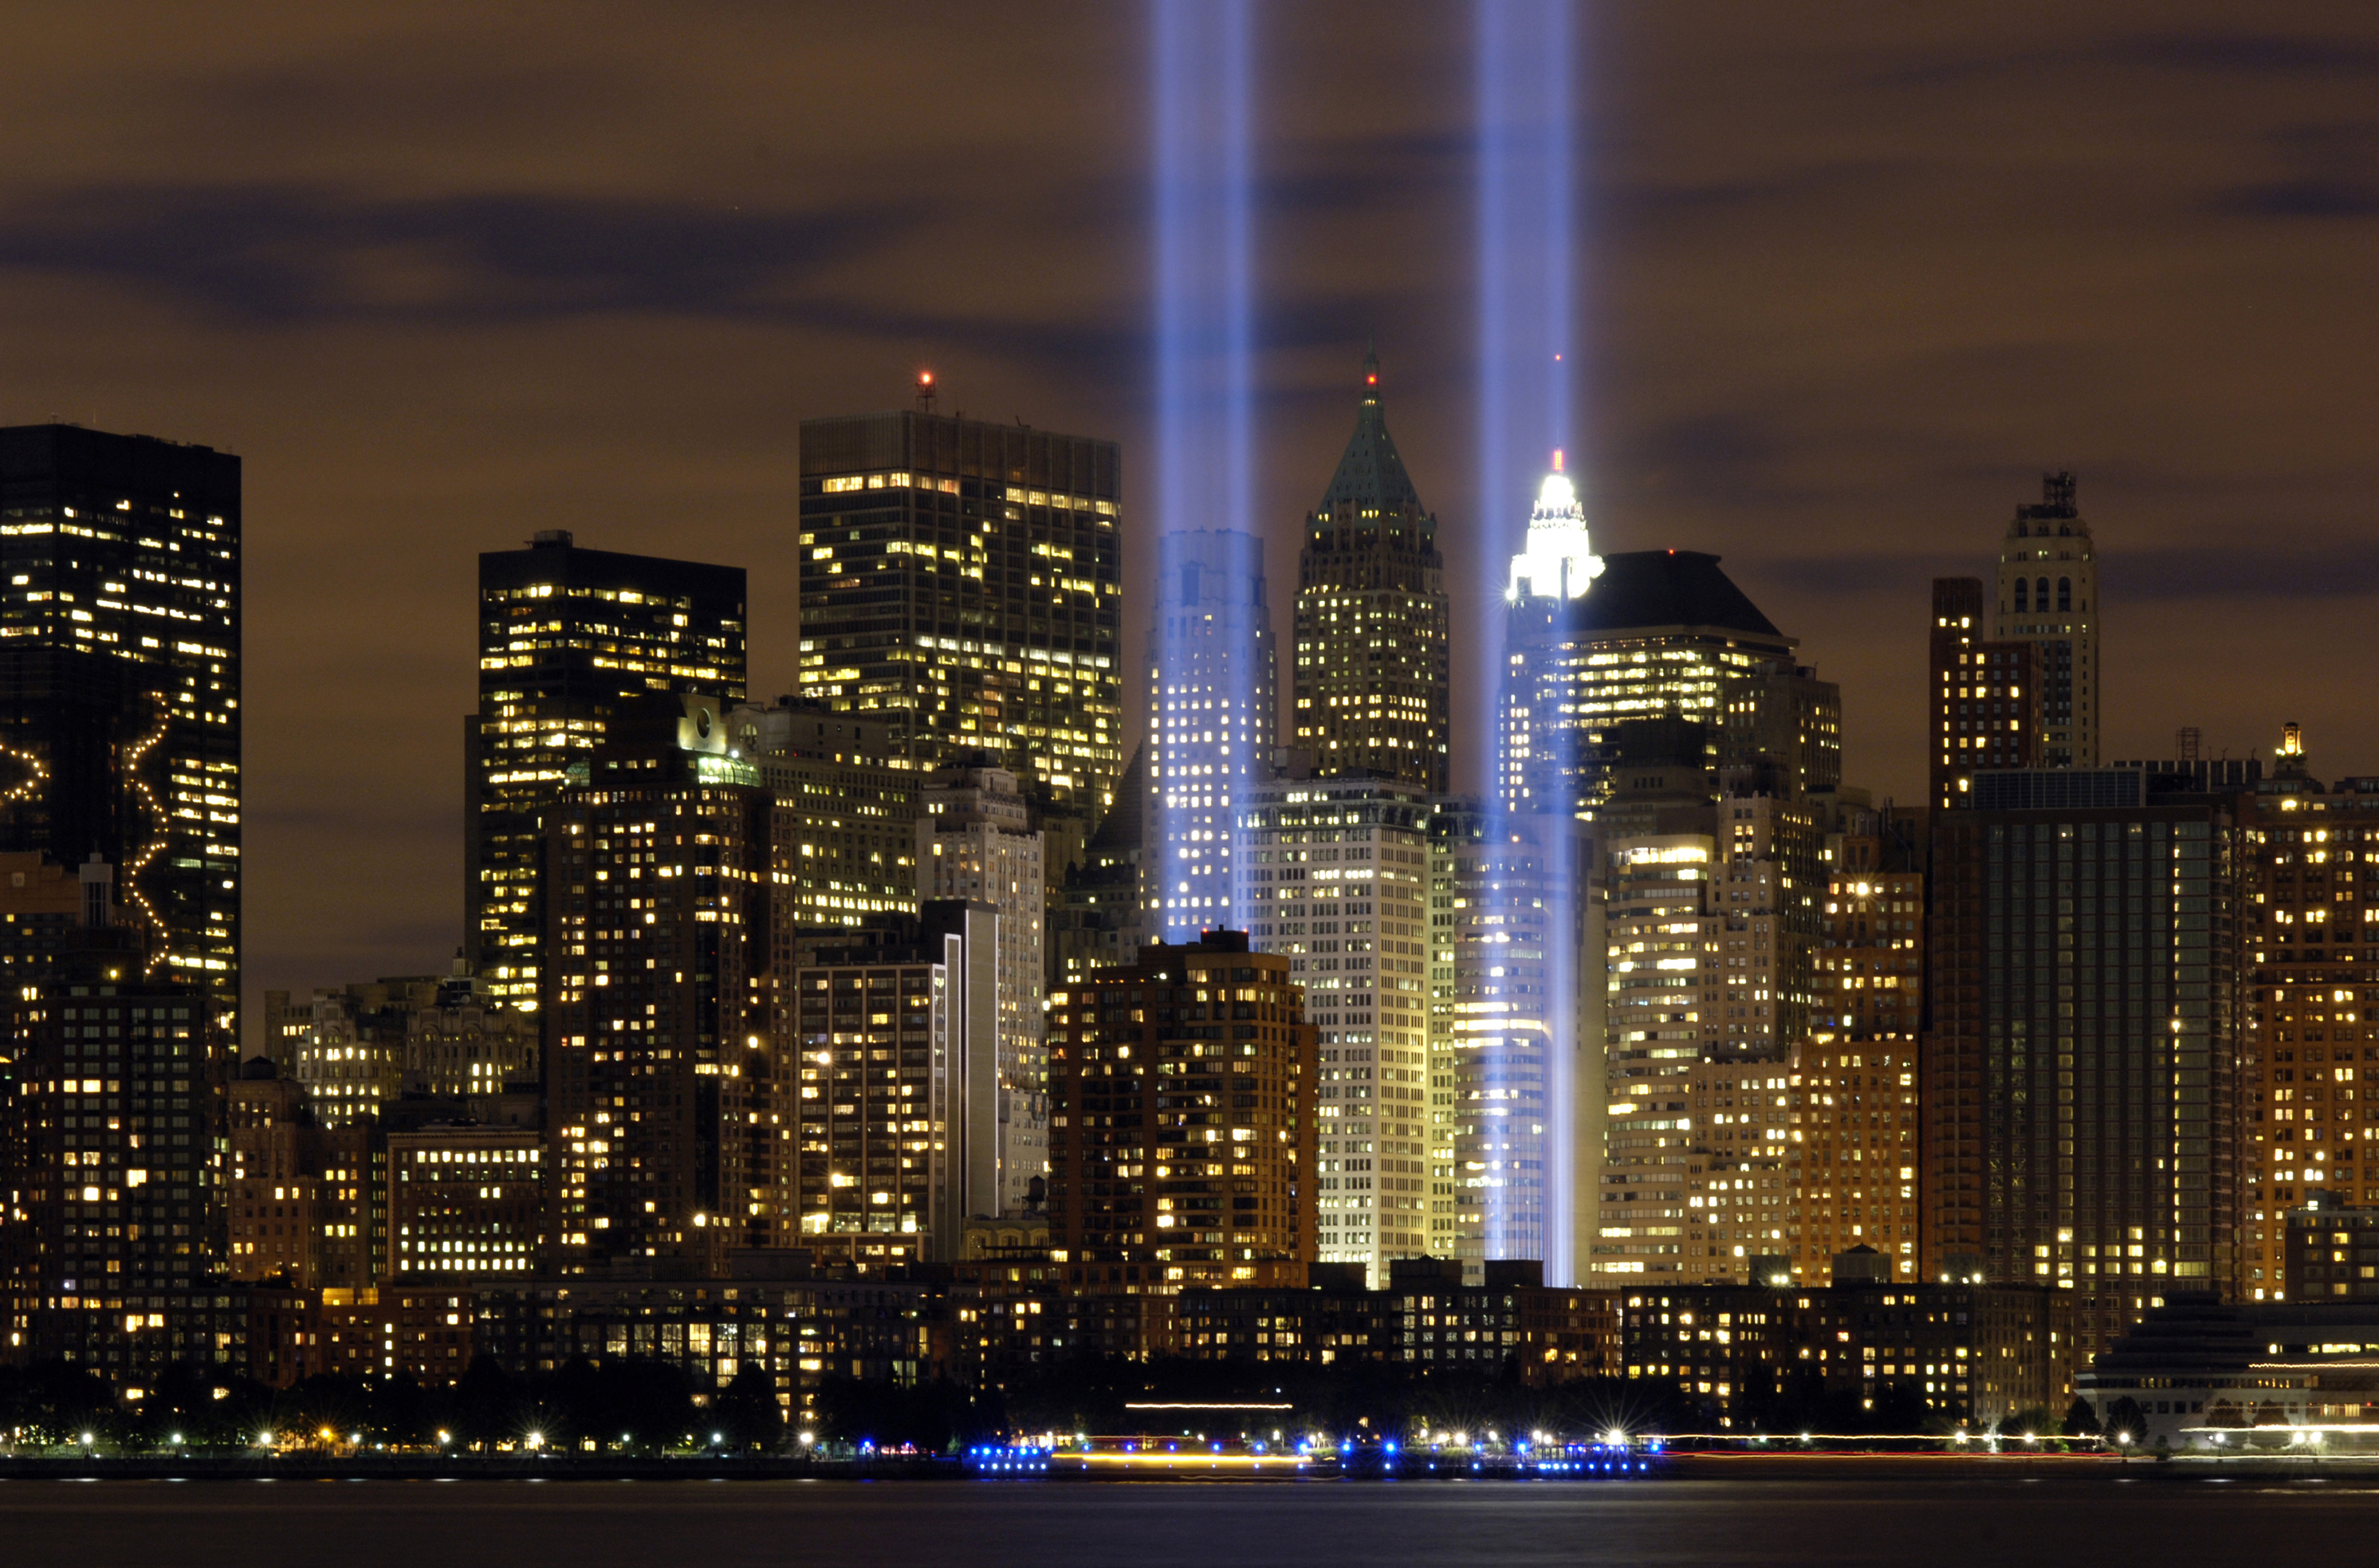 A Beautiful Tribute But A Fiasco For Migratory Birds - Two beams light new yorks skyline beautiful tribute 911